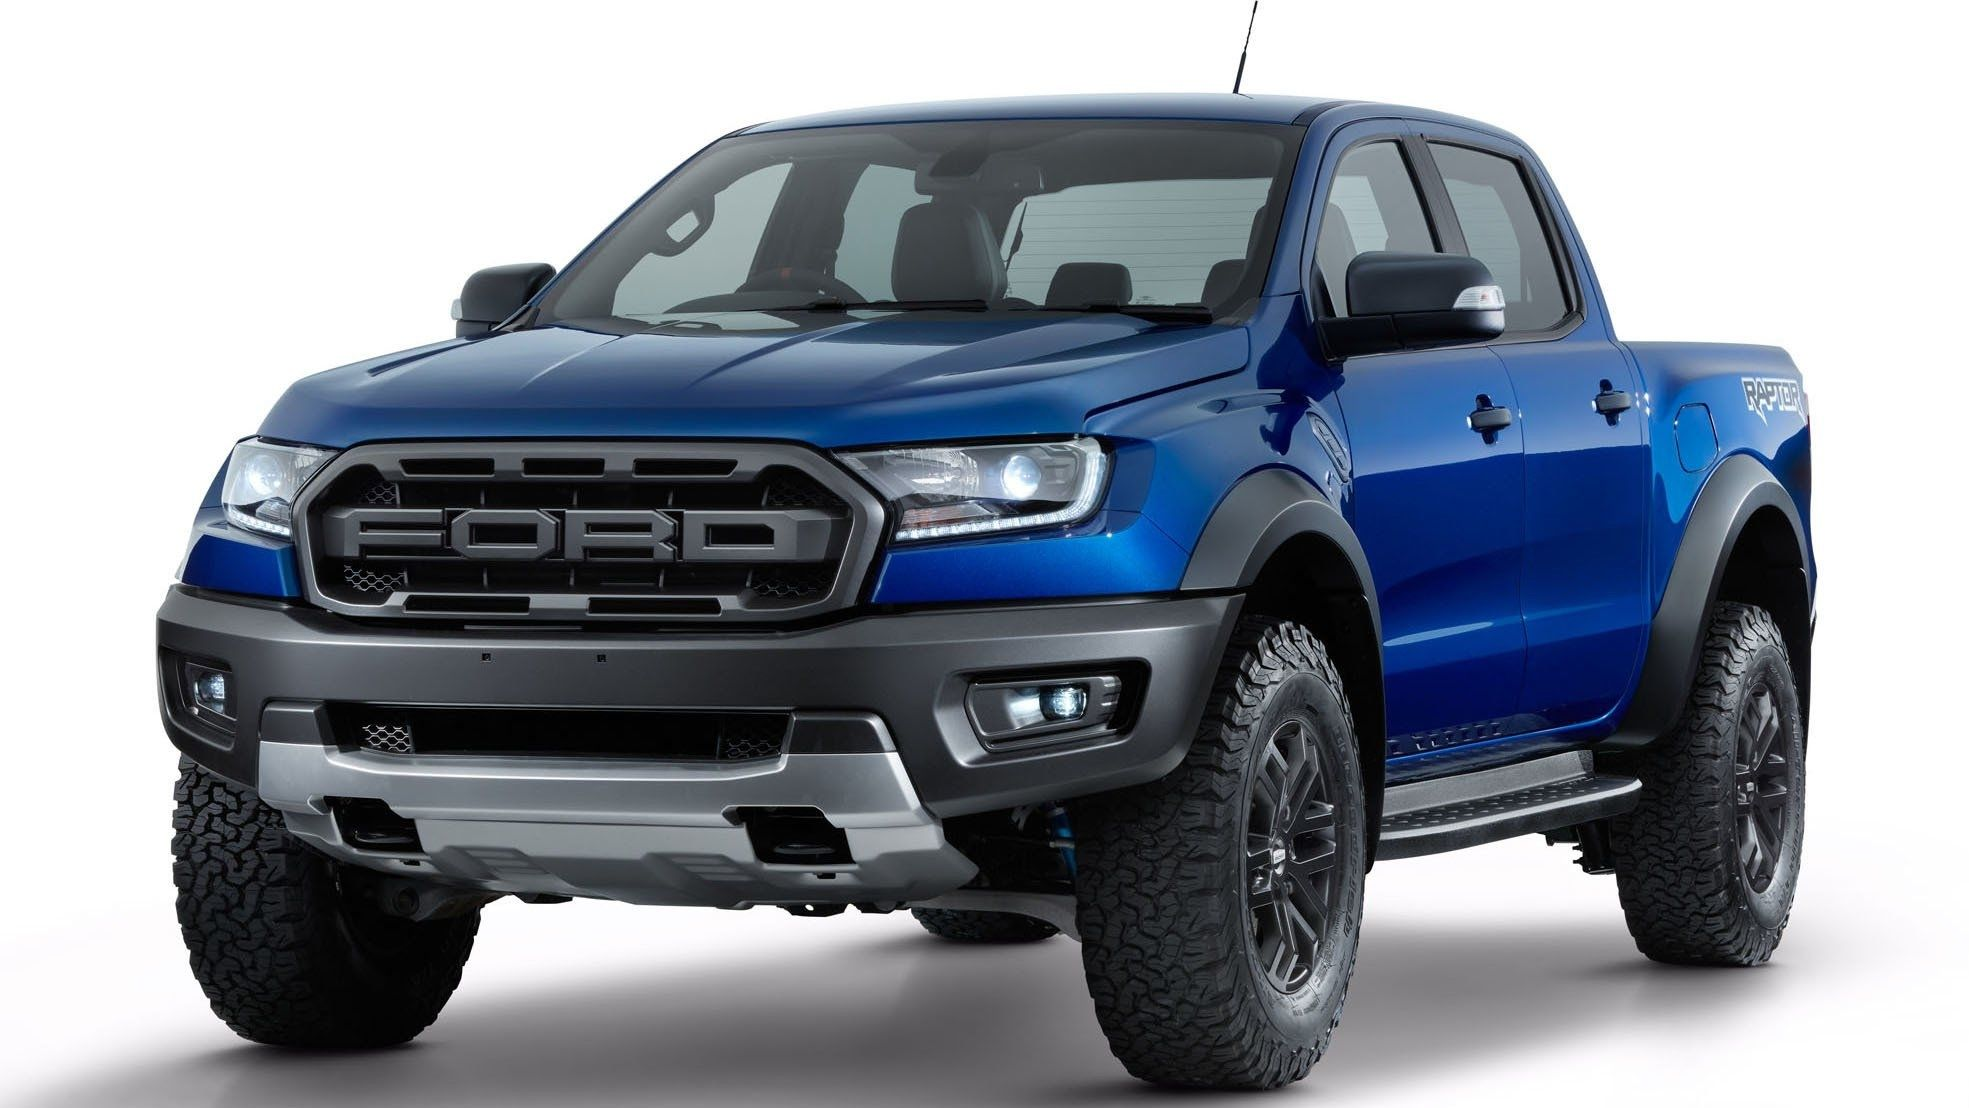 12 Insanely Beautiful 2019 Ford Ranger Dimensions Ford Ranger Raptor Ford Ranger Wildtrak 2019 Ford Ranger